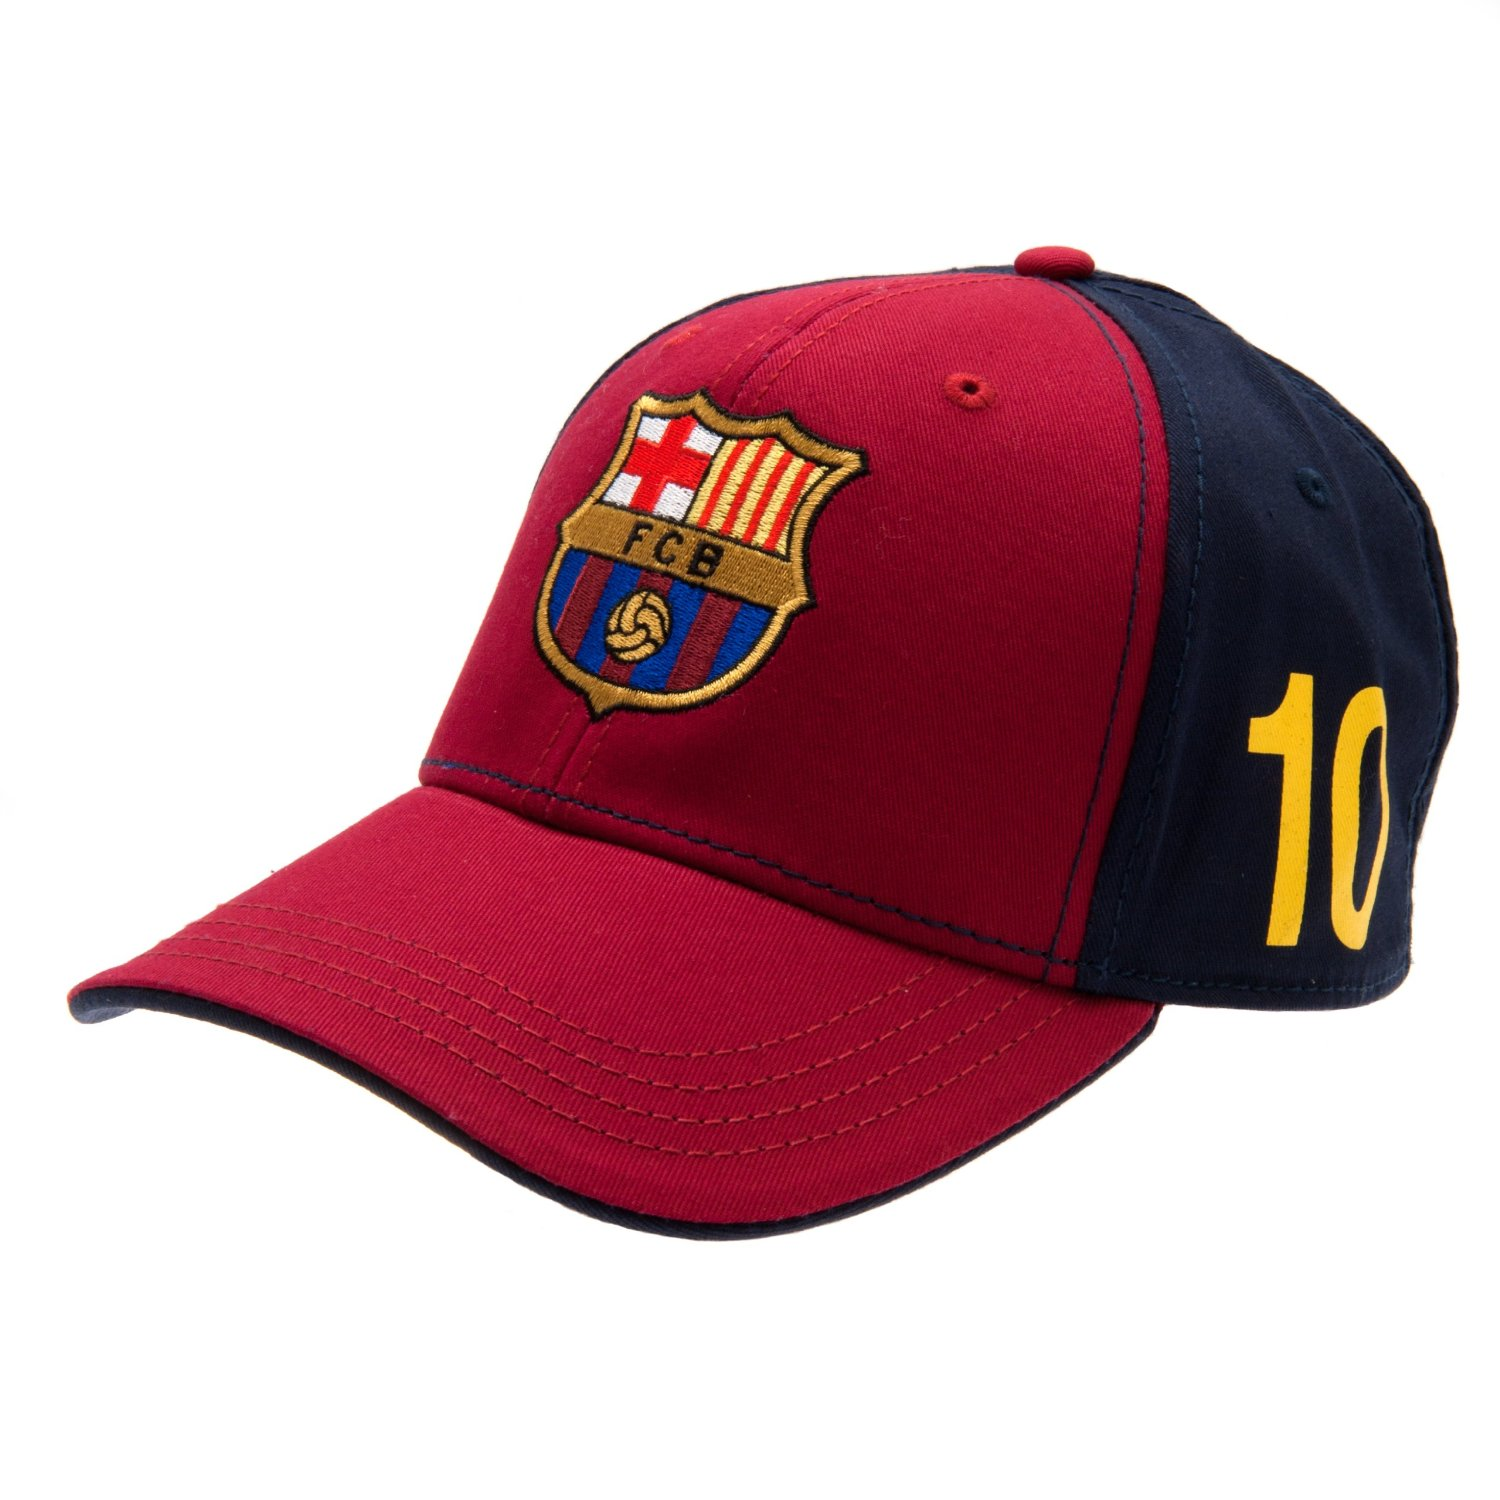 bd58d5570fd87 Get Quotations · FC Barcelona Messi Cap - Great Hat with Barcelona Team  Colors and Crest - Features